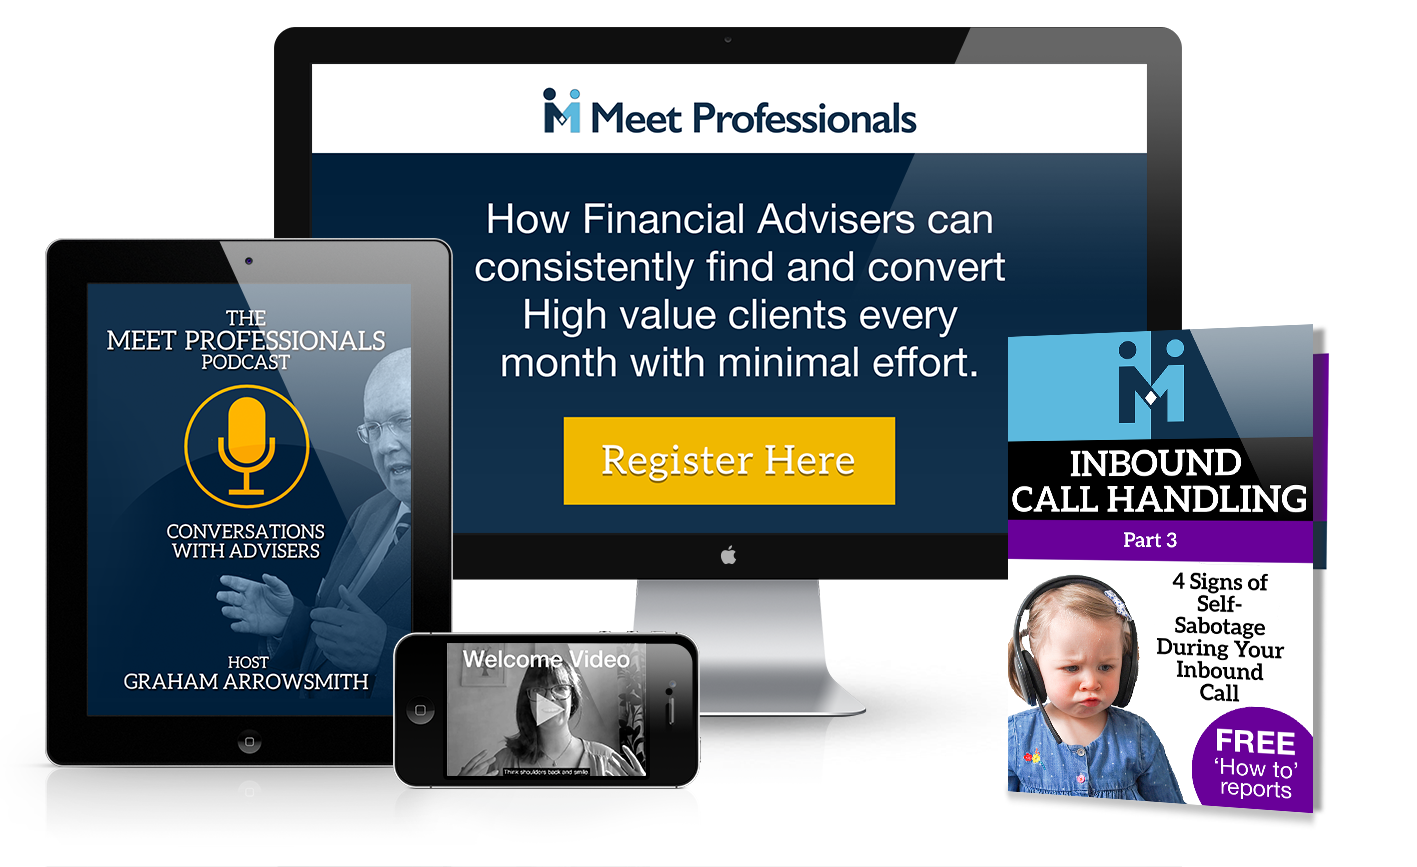 iMac, IpAd, iPhone and Free Report Layout for Meet Professionals Offer